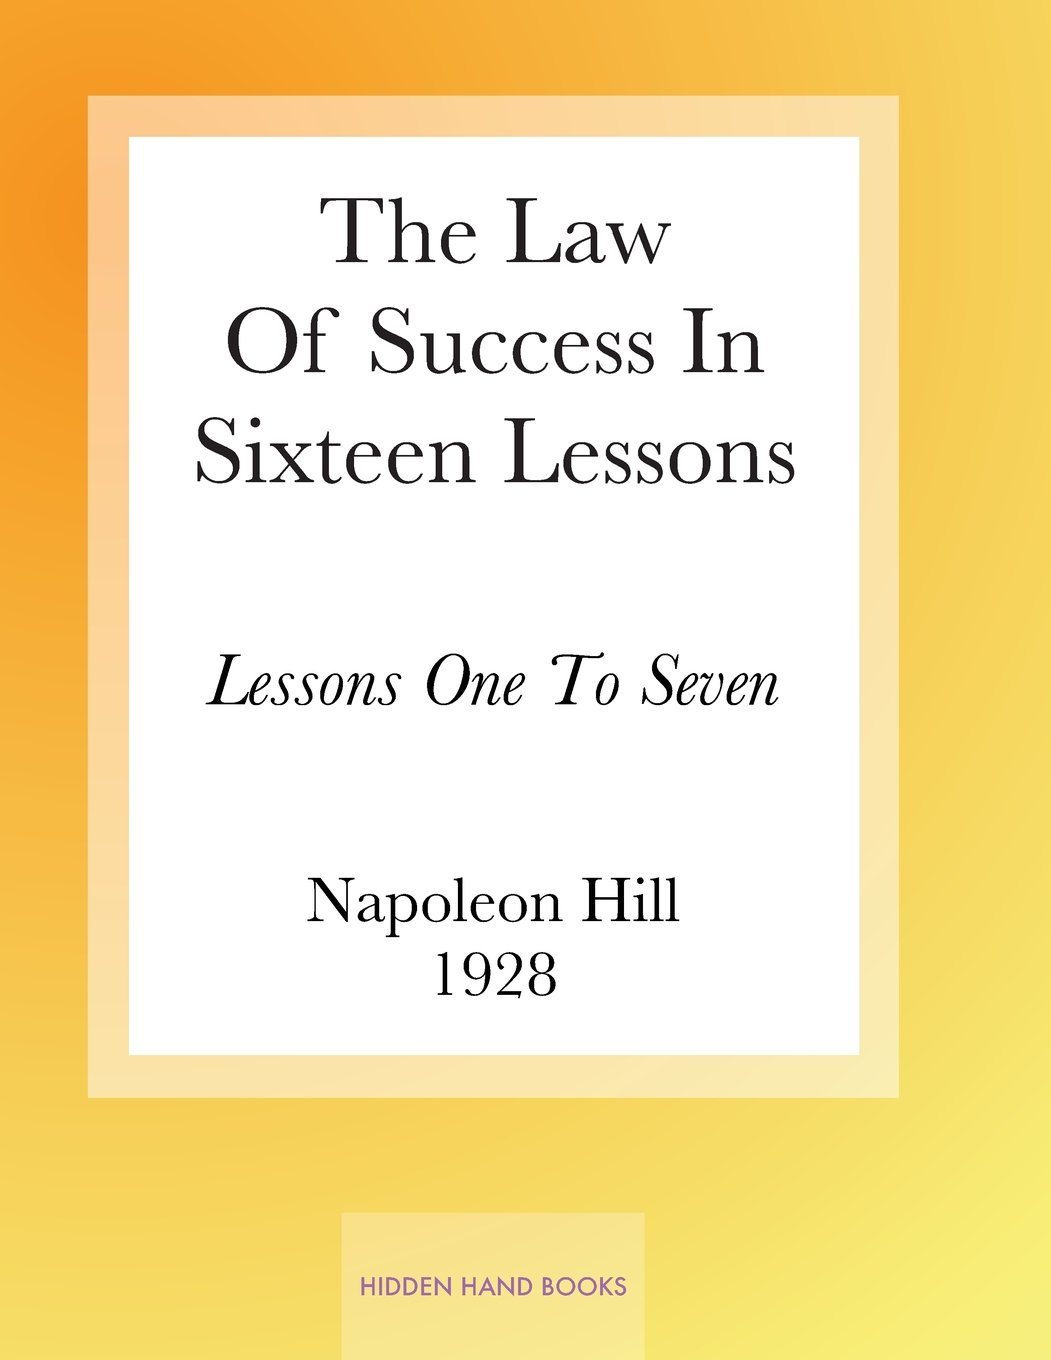 The Law Of Success In Sixteen Lessons by Napoleon Hill: Lessons One To  Seven (Volume 1): Napoleon Hill: 9781986125161: Amazon.com: Books